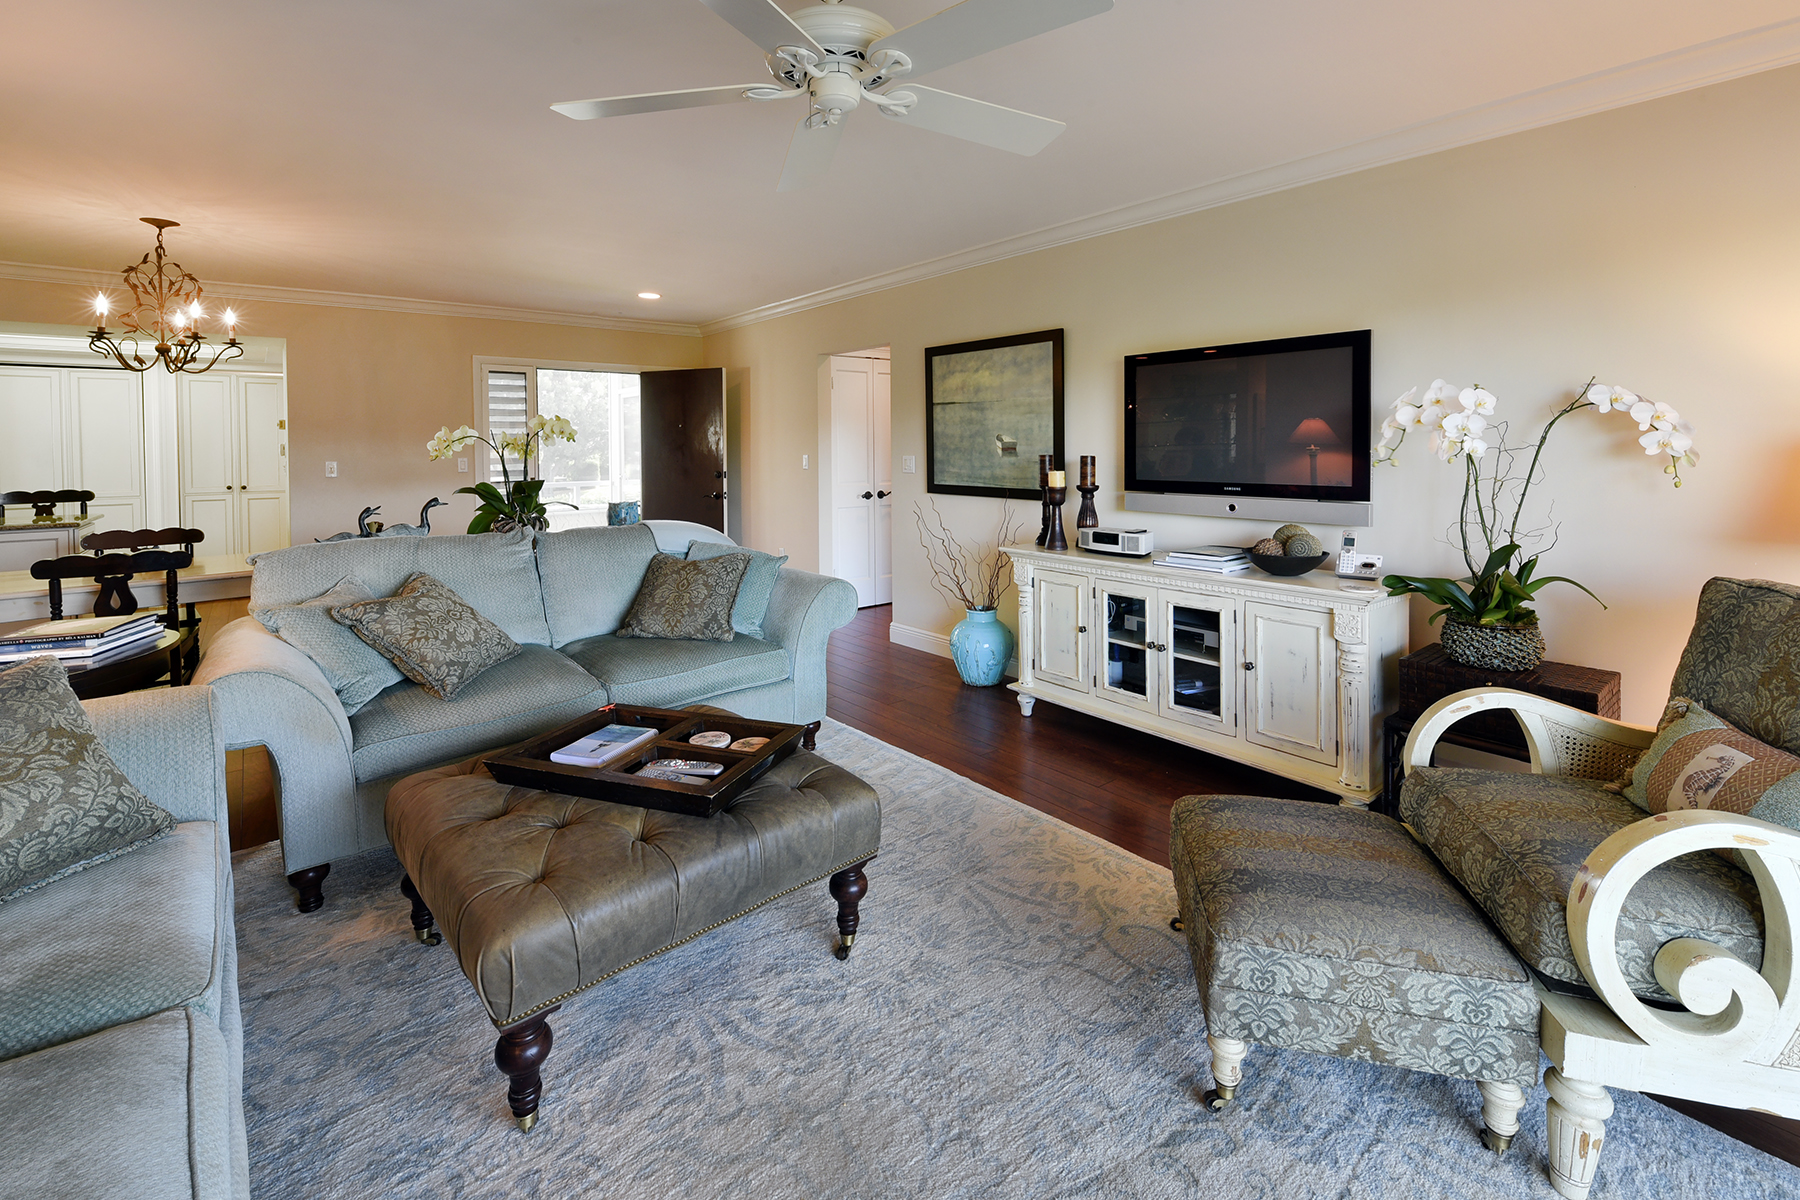 Additional photo for property listing at Waterfront Condominium at Ocean Reef 9 Landings, Unit A Key Largo, Florida 33037 Estados Unidos